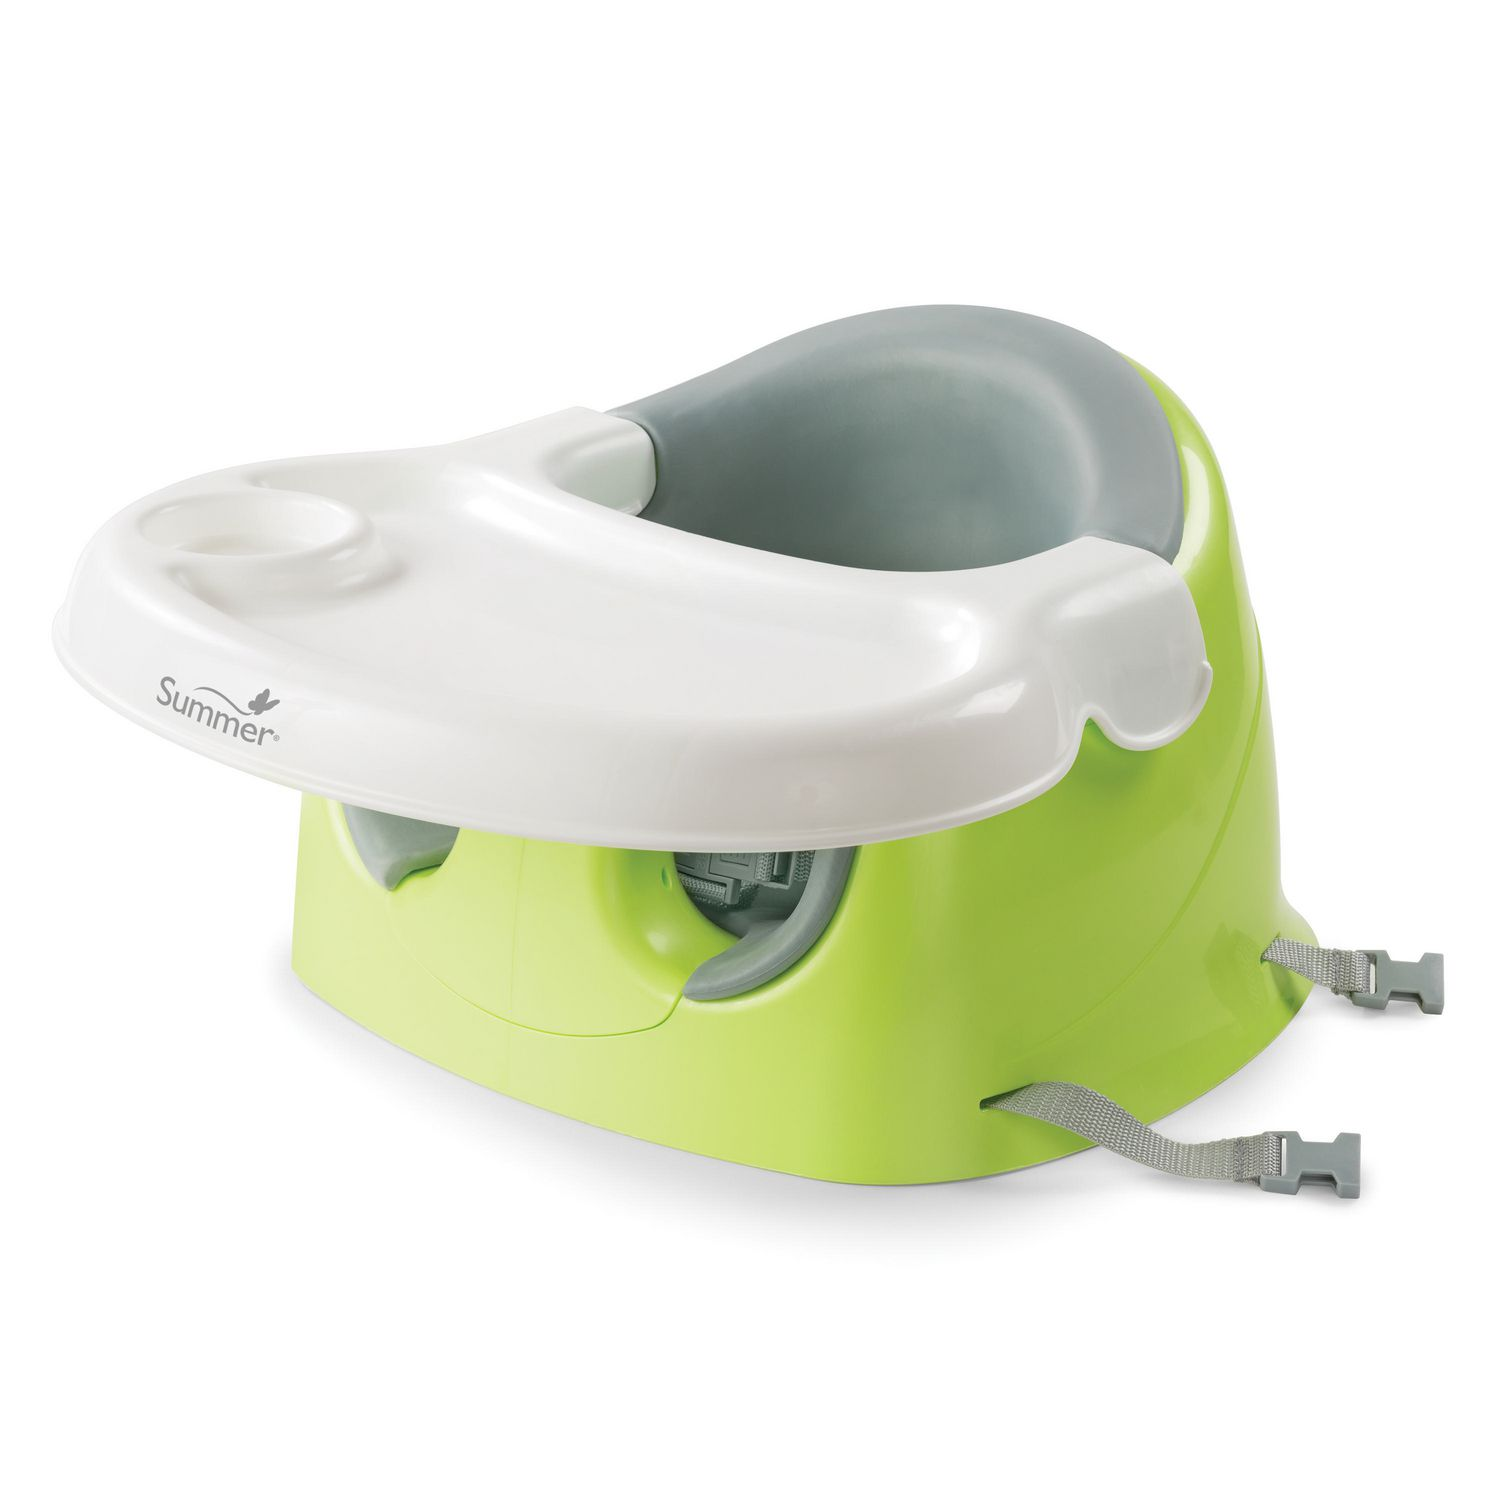 Summer Infant SupportMe 3 in 1 Positioner Feeding Seat & Booster